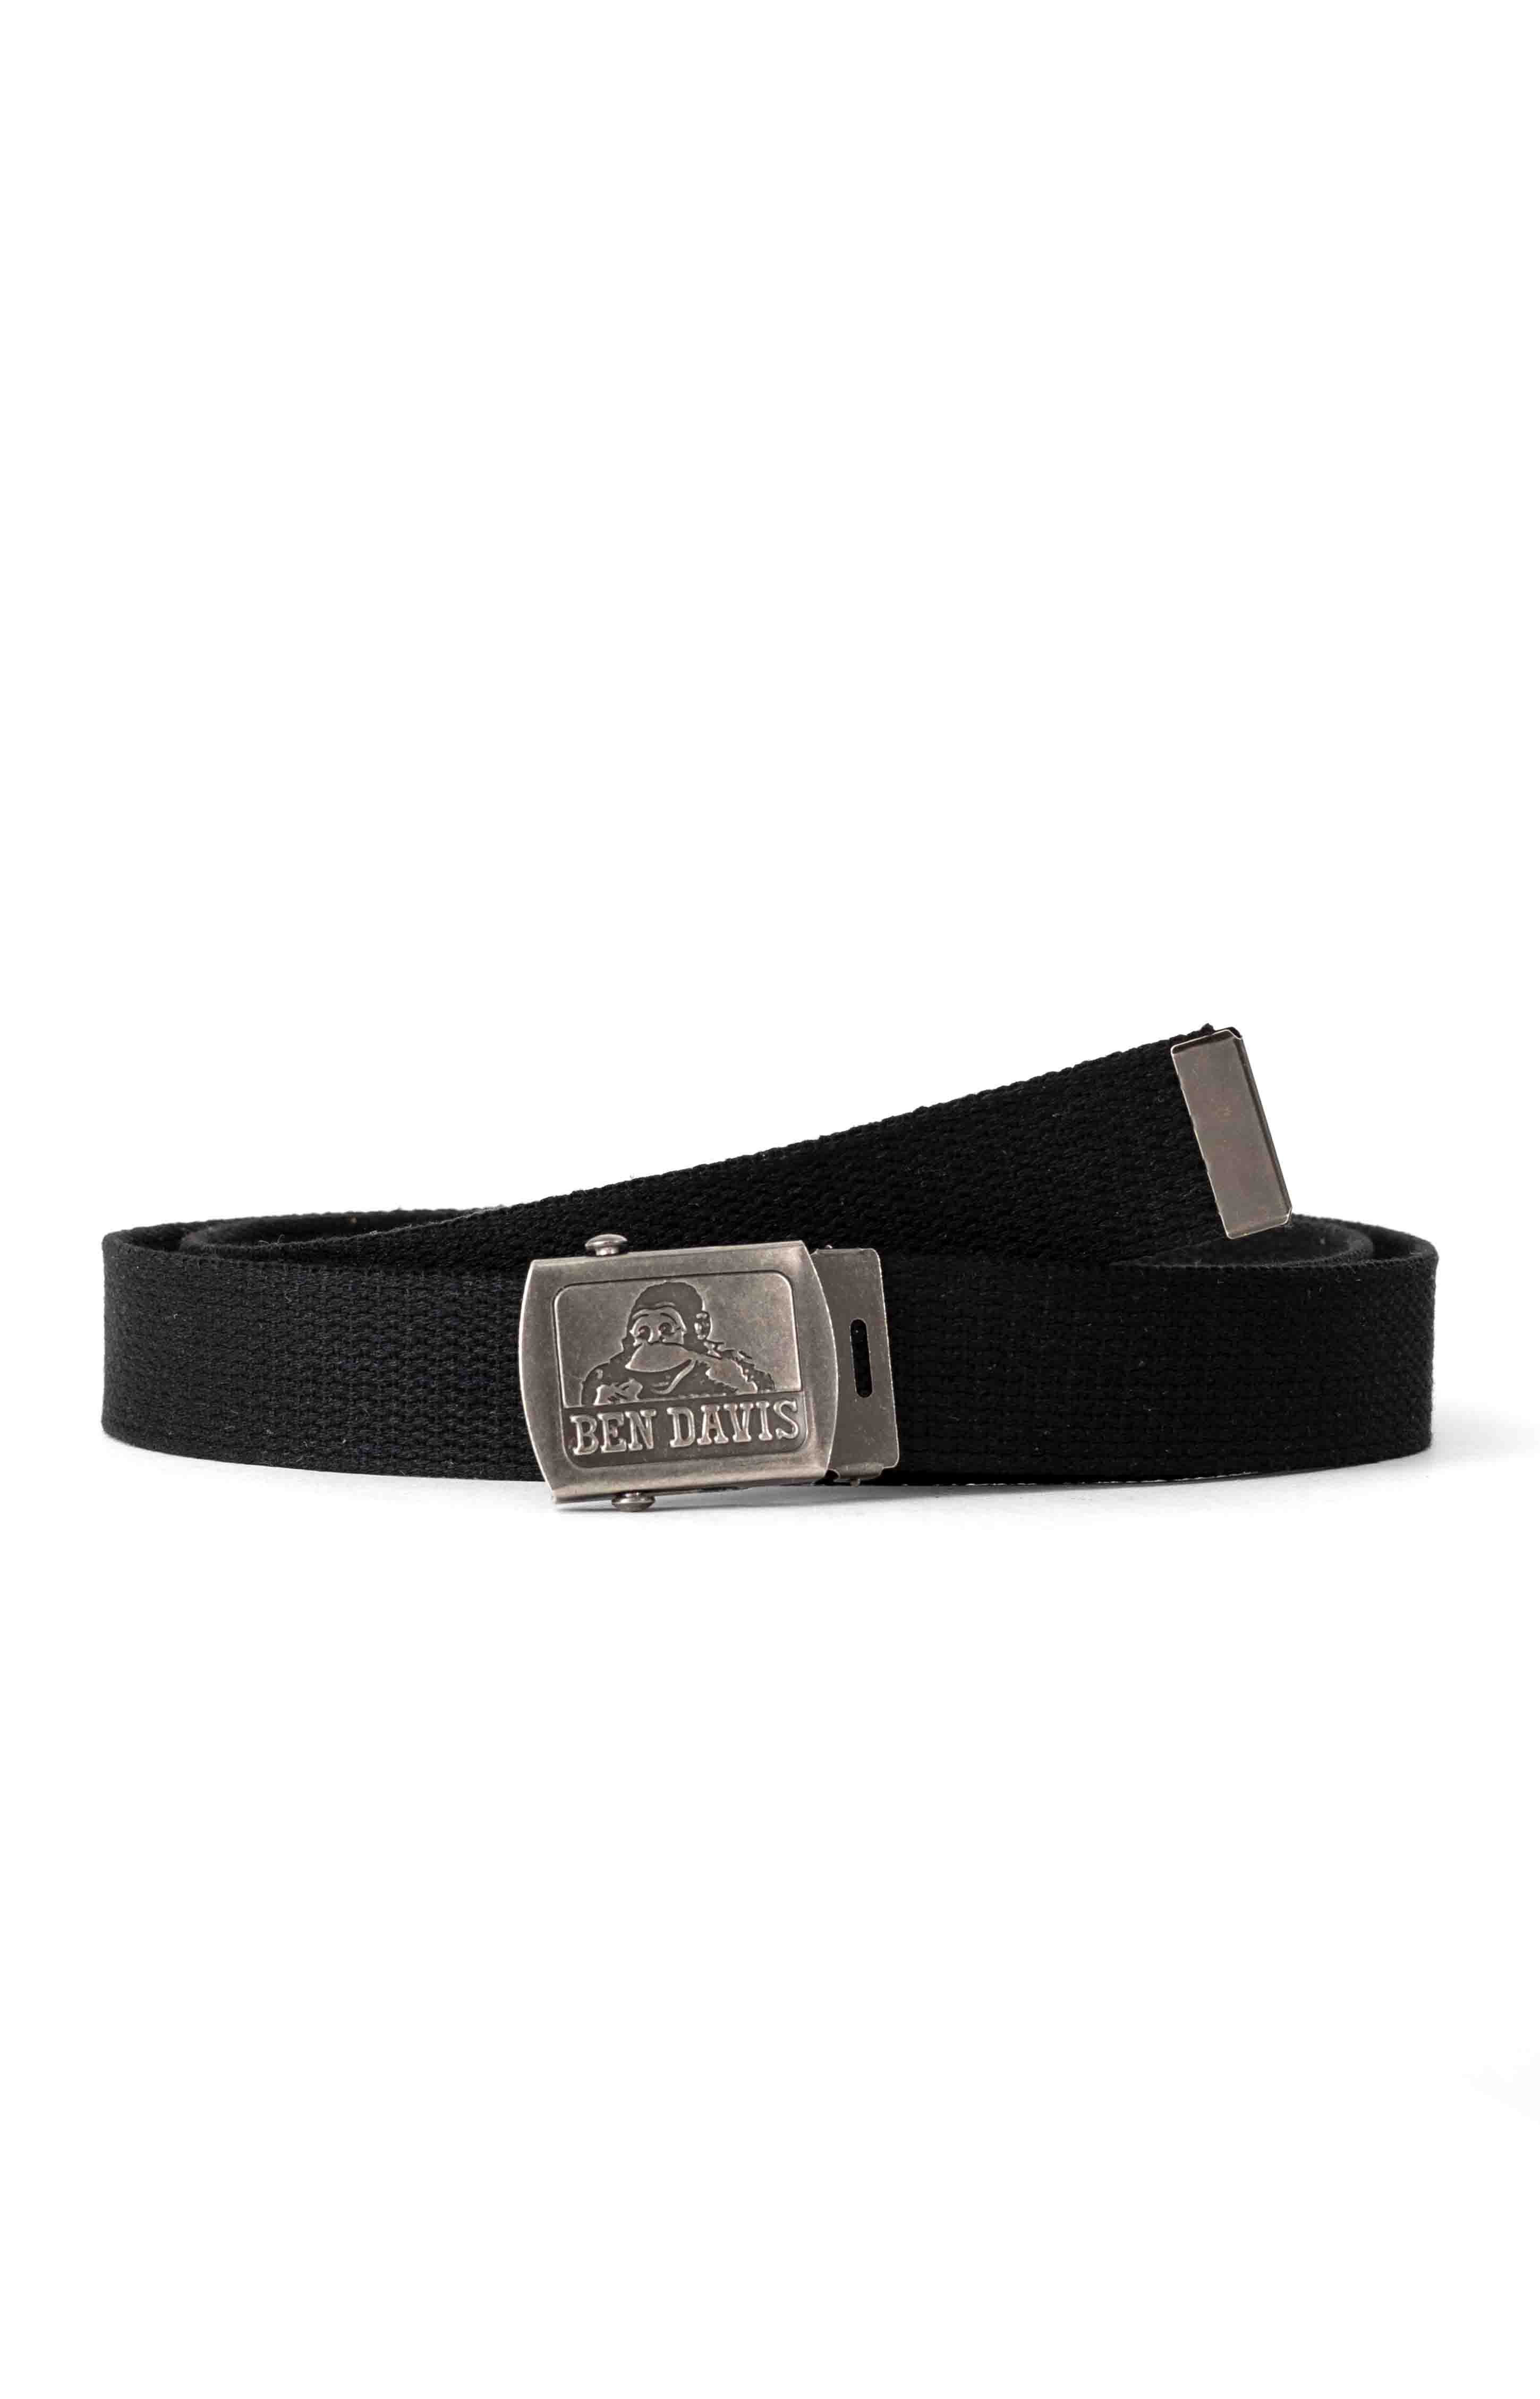 Cotton Webbing Belt -  Black